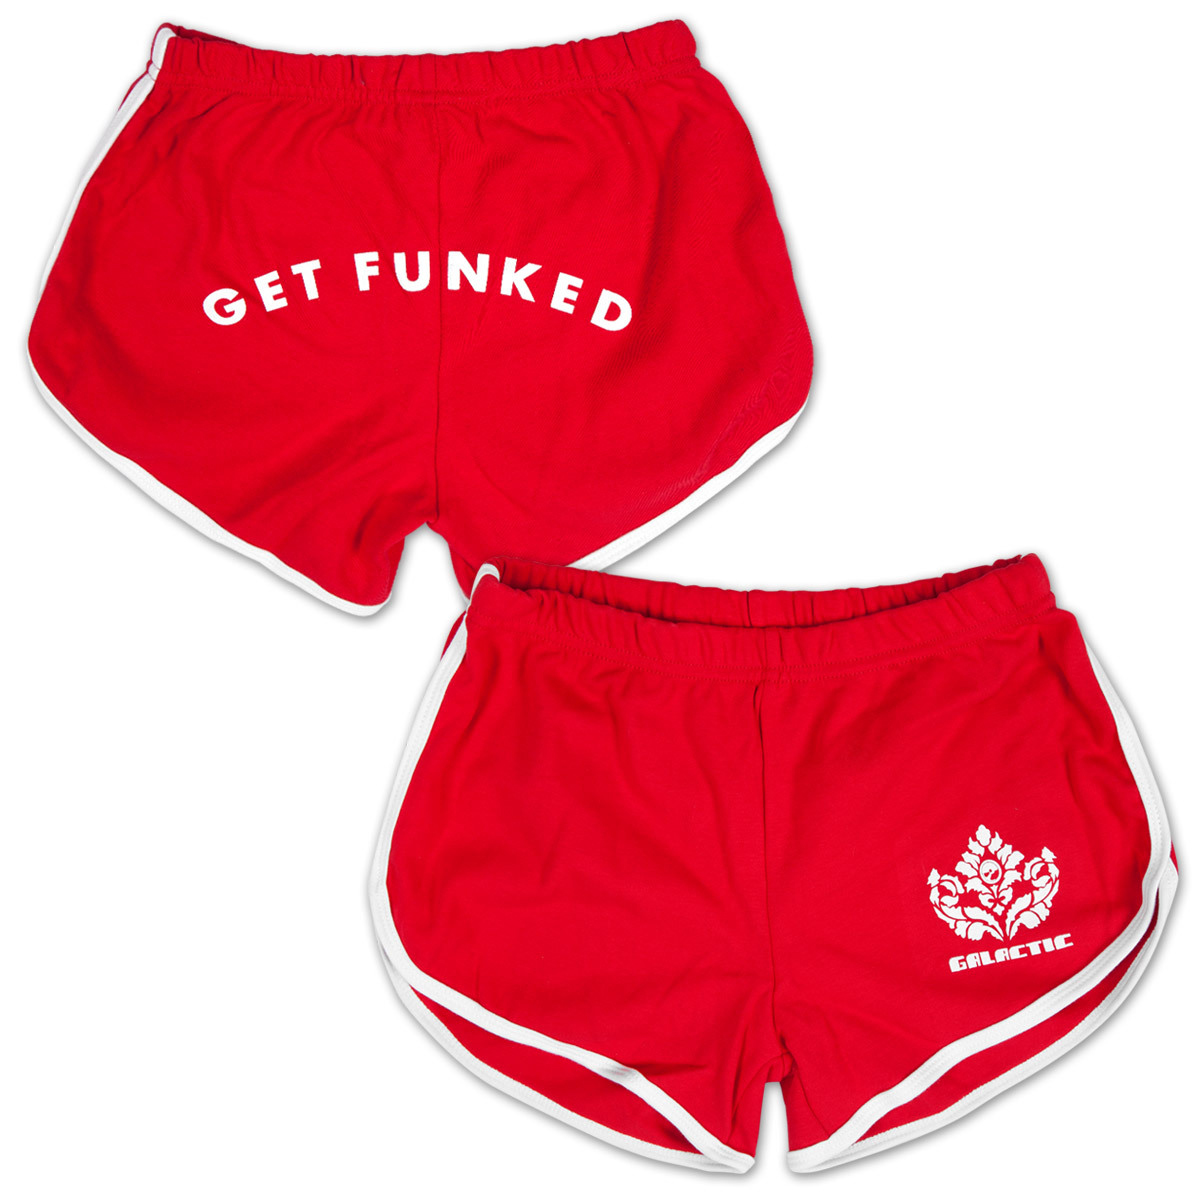 Get Funked Shorts